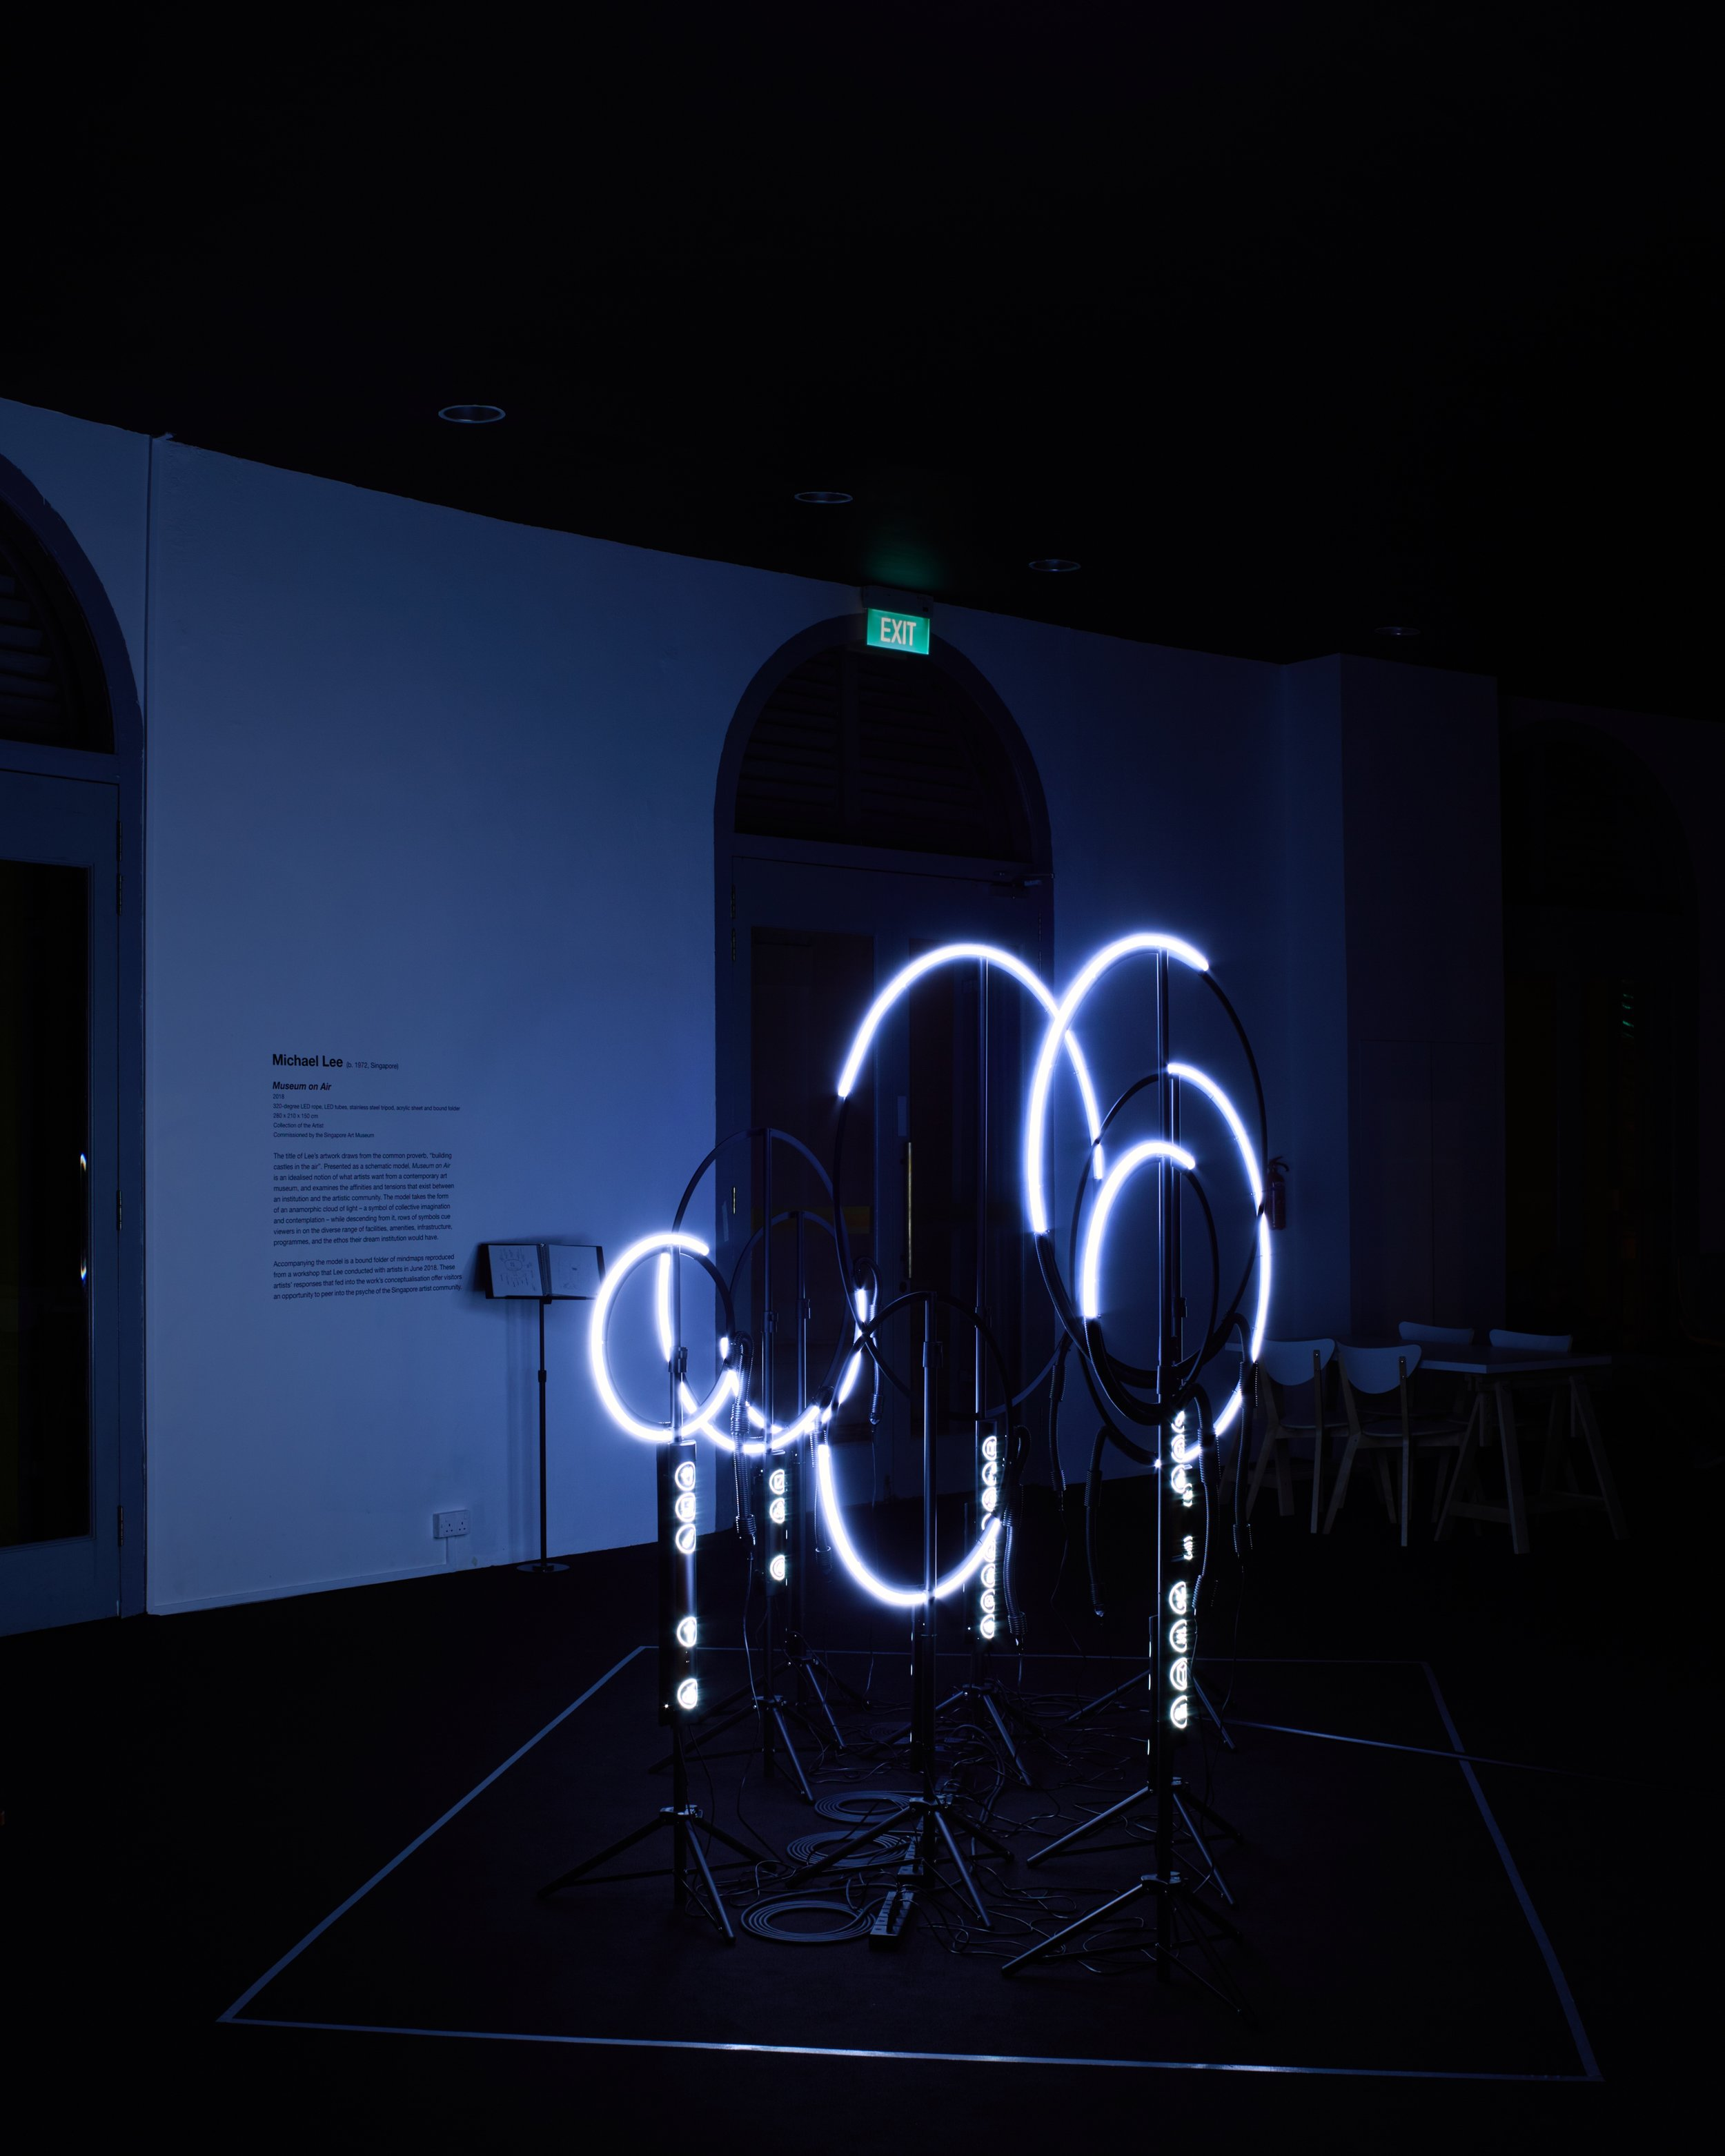 "Michael Lee,  Museum on Art  (oblique view), 2018, 320-degree LED ropes, vinyl stickers on LED lamps, matt enamel spraypaint on perspex sheets, steel tripods and cable ties, dimensions variable, part of the exhibition ""Installation in Progress"" curated by John Tung at Curve, Singapore Art Museum. Photo by Tan Hai Han."